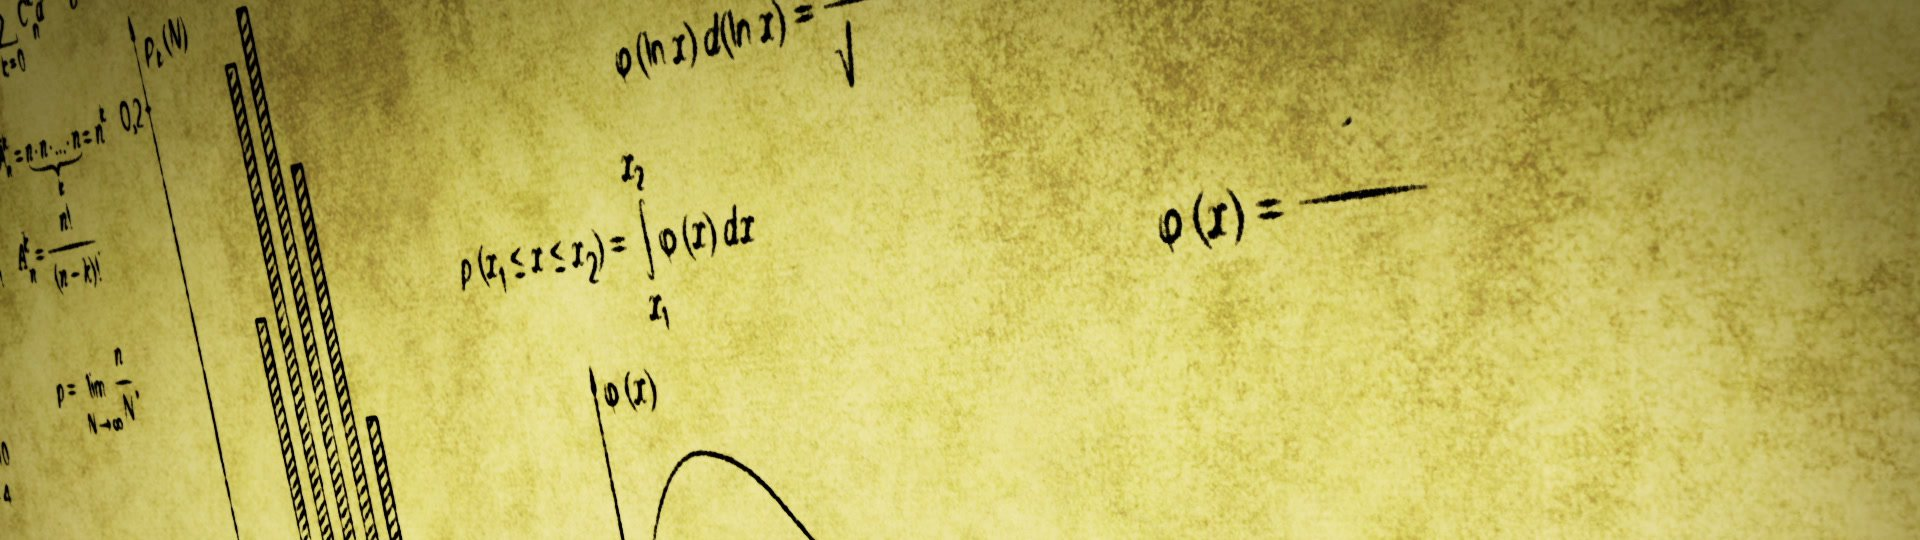 Math physics formulas on old paper panning loop | math physics formulas on old paper panning, computer generated loopable motion background. HD 1080 progressive - ID:13120